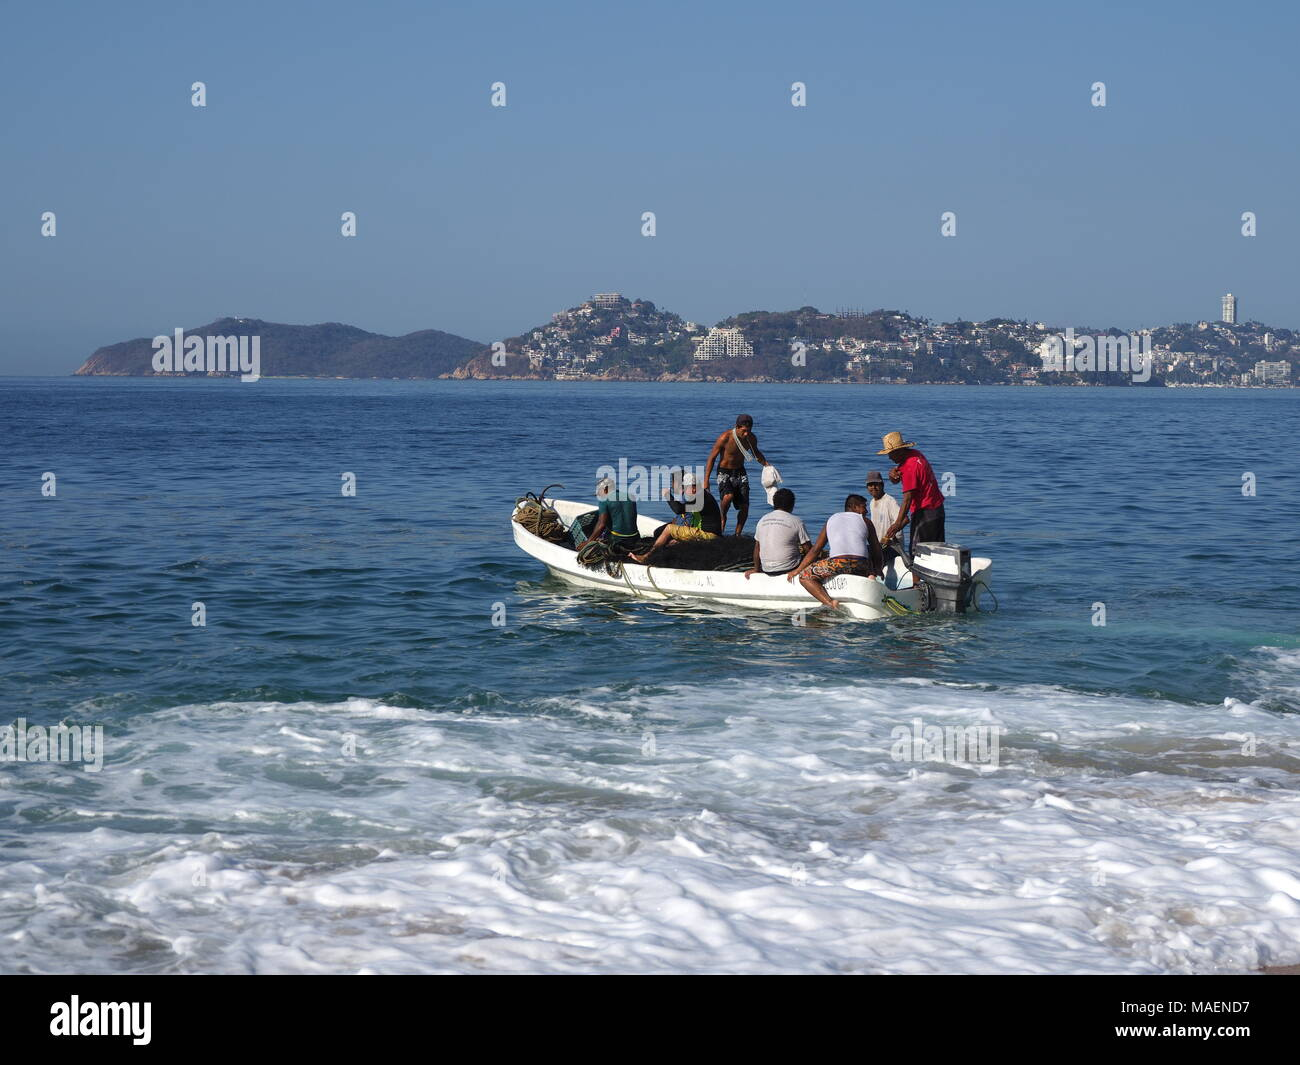 ACAPULCO, MEXICO NORTH AMERICA on MARCH 2018: Motor boat for fishing, tourist excursions of Pacific Ocean waves in mexican city, scenic landscapes of  Stock Photo